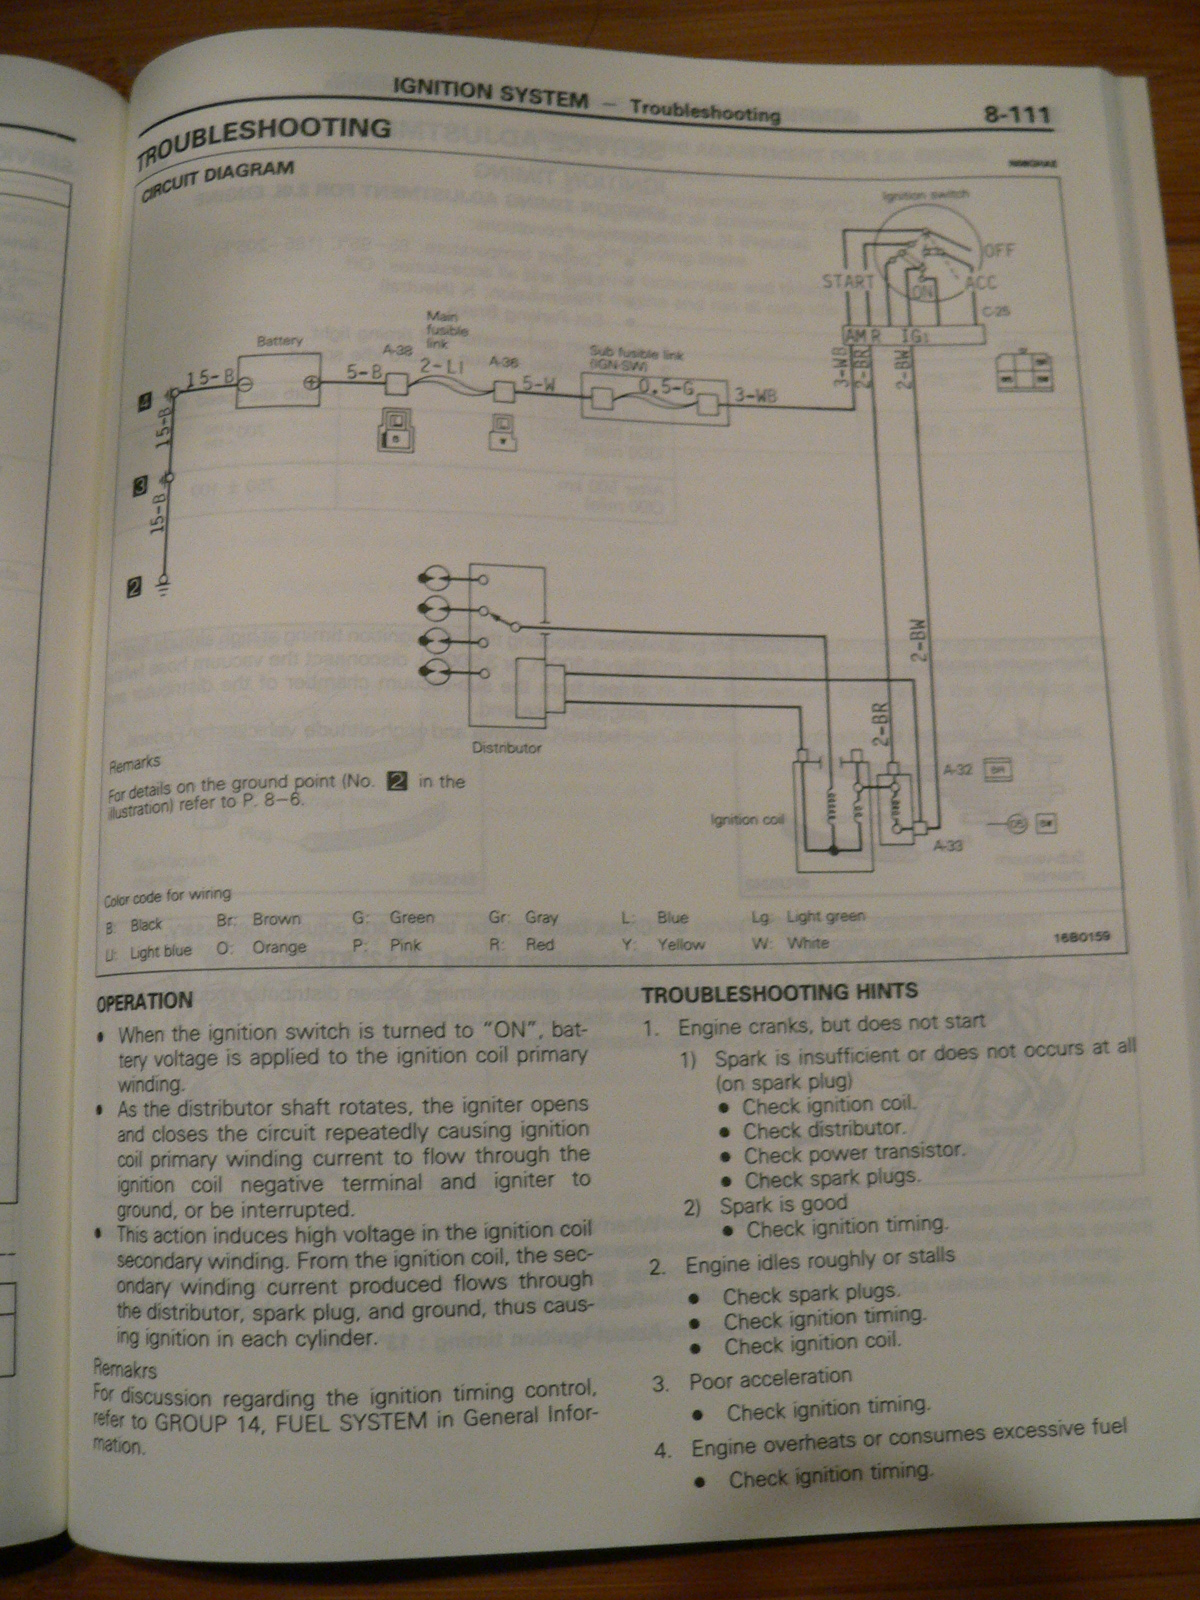 4252121041_db60996b85_o 88' d50 coil wiring just plain ol' b s starquestclub com mitsubishi starion wiring diagram at aneh.co